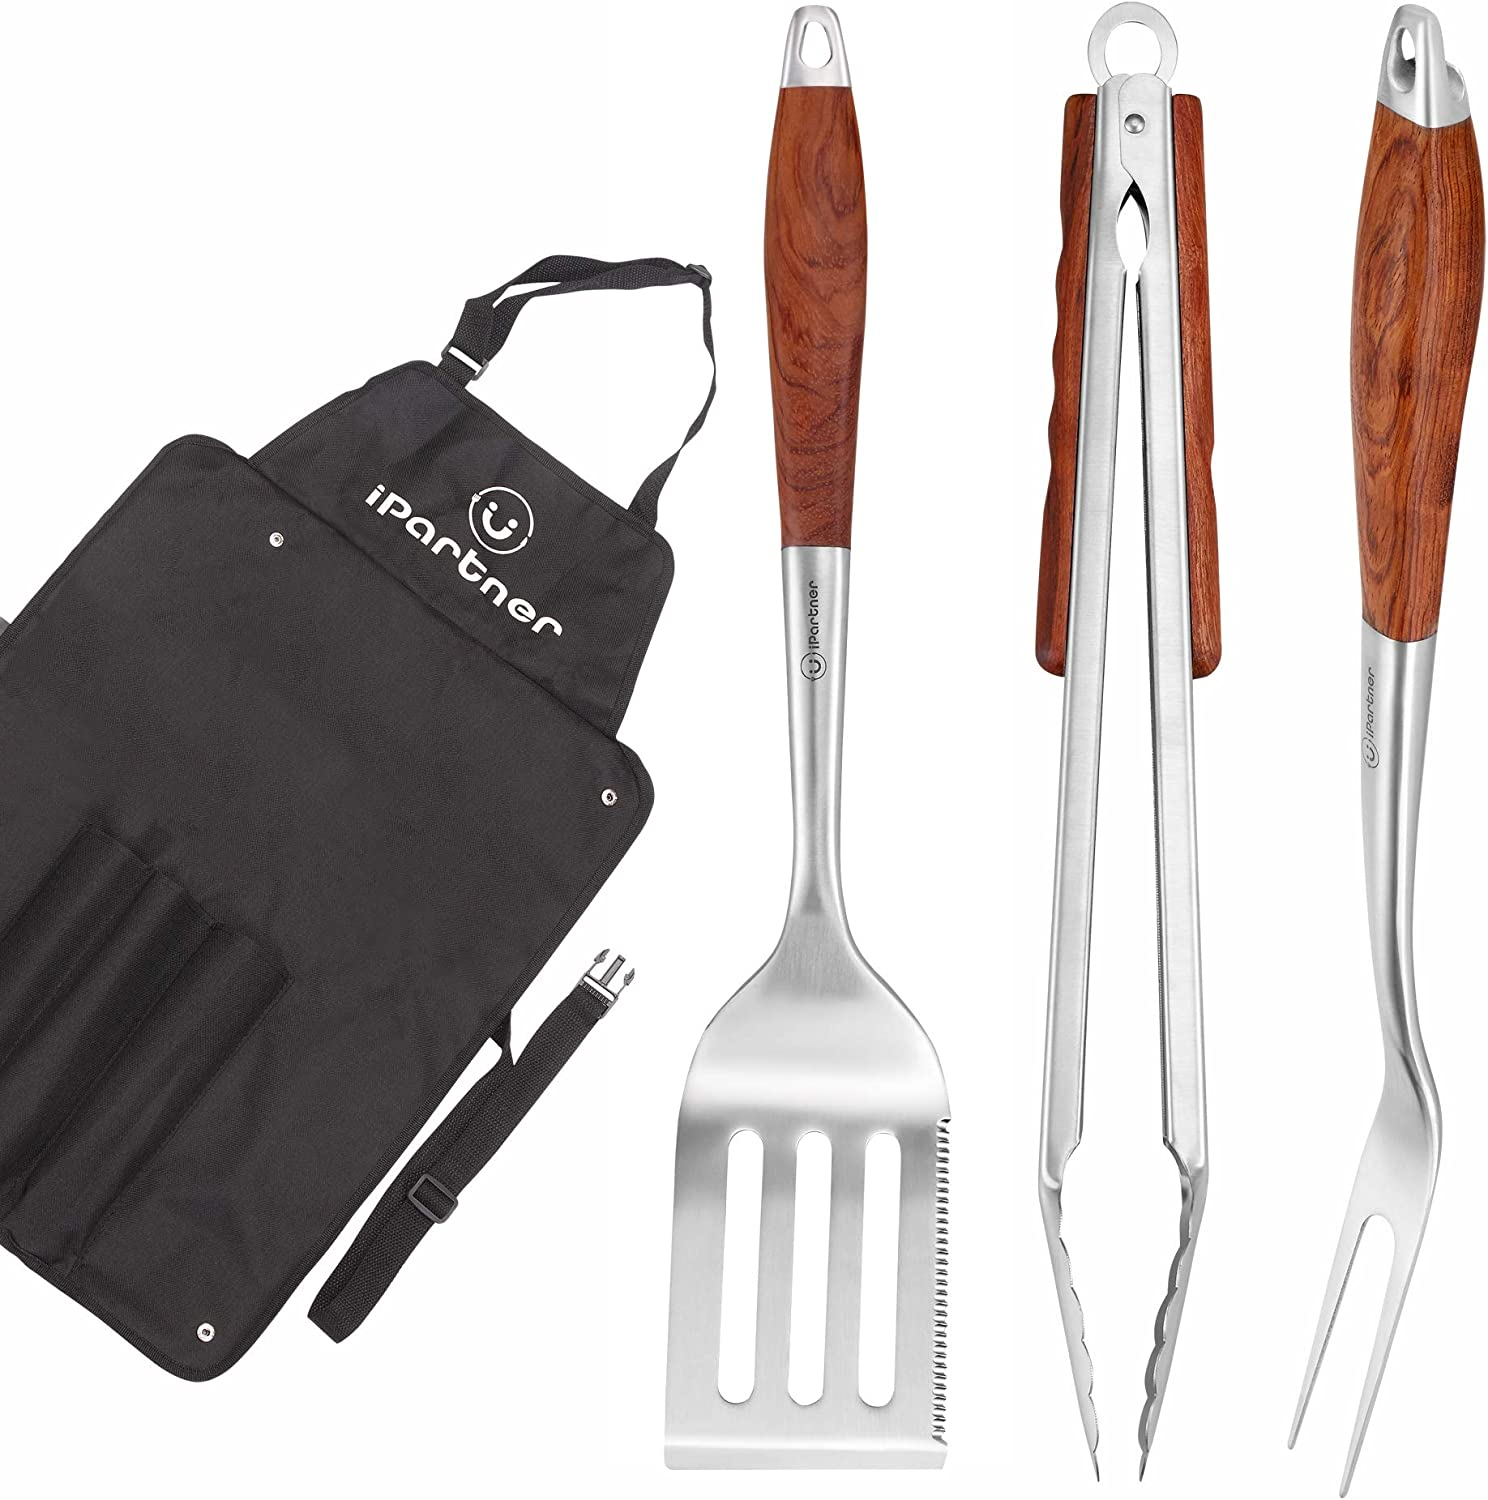 iPartner Heavy Duty BBQ Grilling Tool Set, 3pcs Real Thick Stainless Steel Barbecue Spatula, Tongs Fork with Long Rosewood Handle, W Apron Tote for Easy Use Storage, Premium Grill Accessories